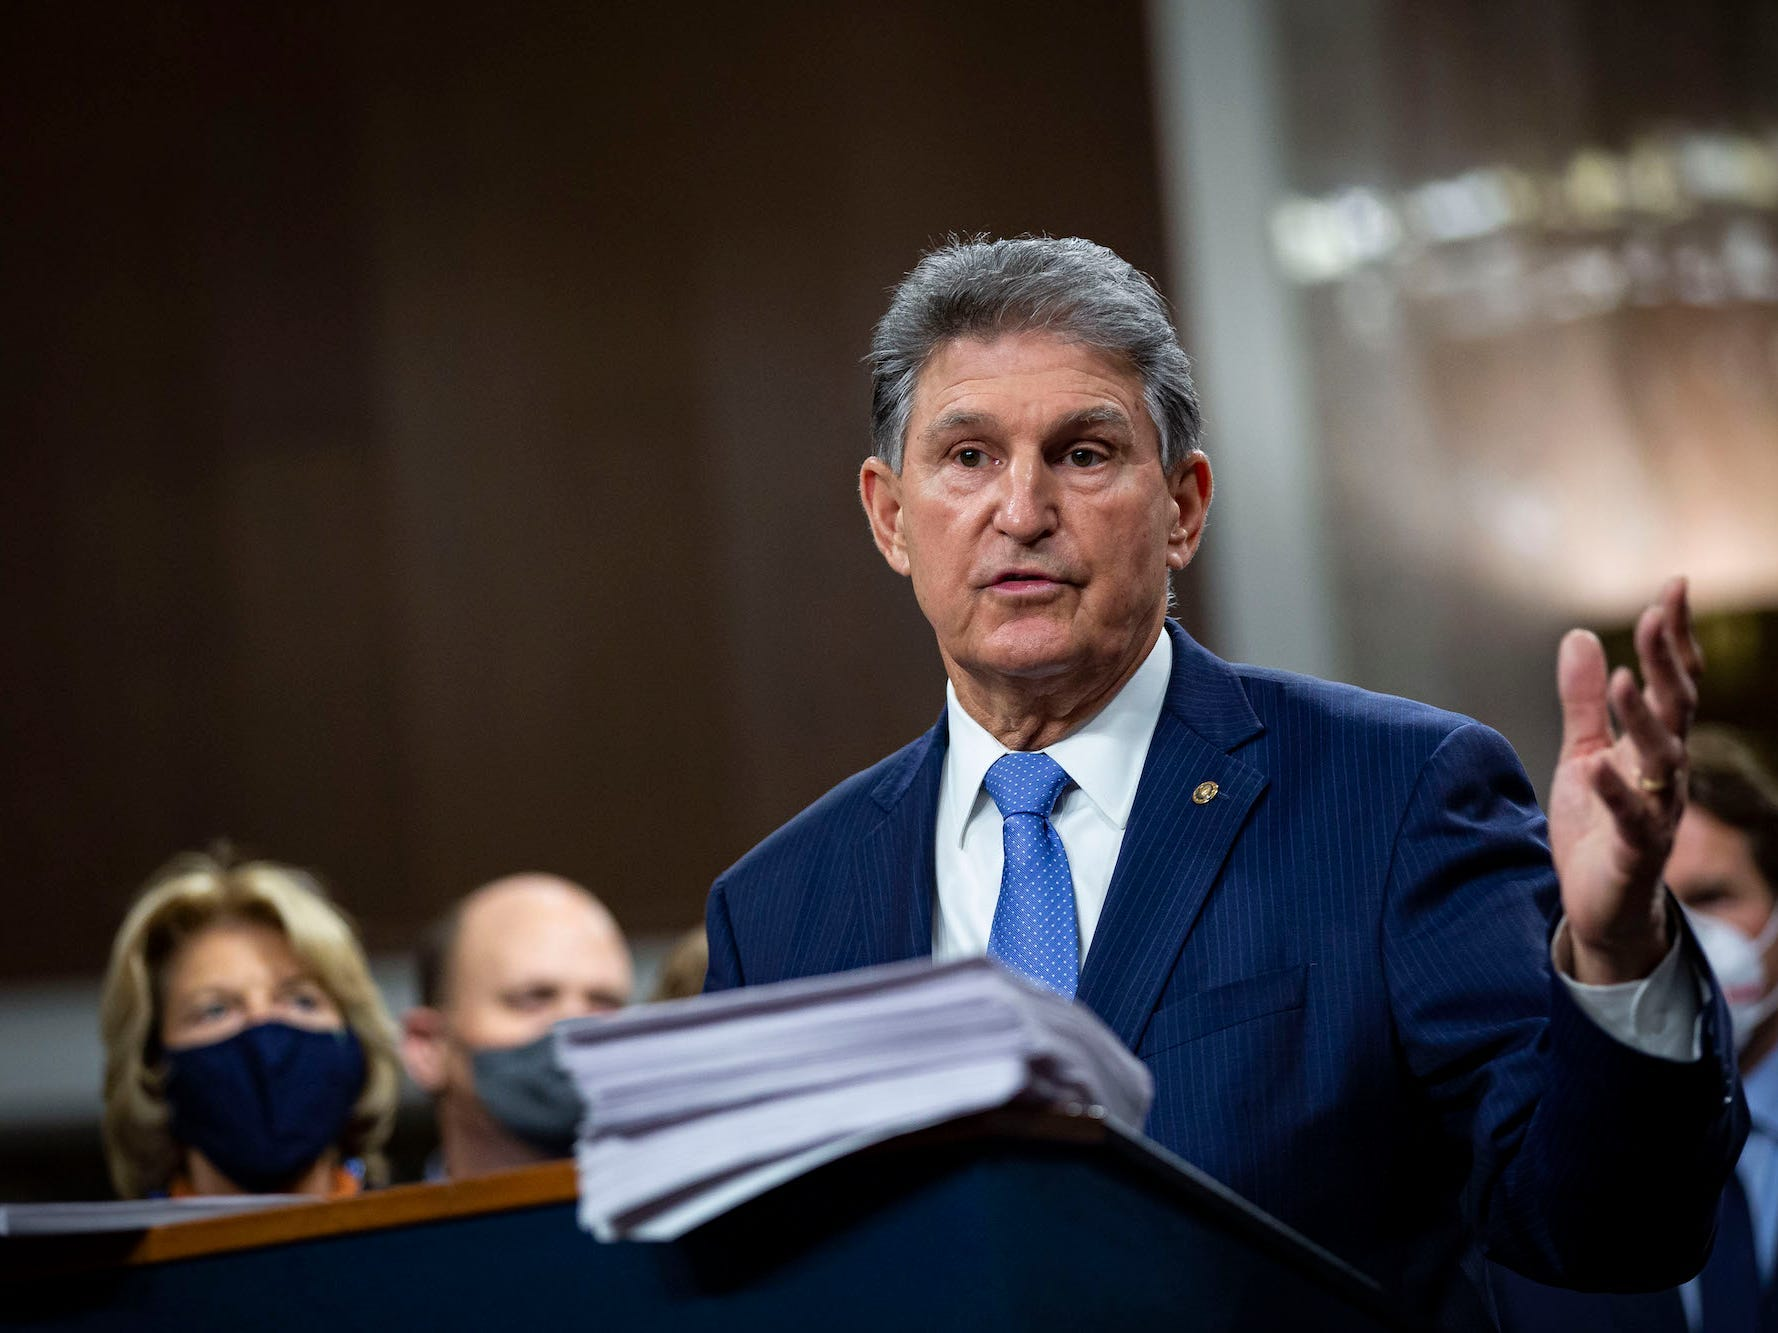 Joe Manchin poses a risk to raising the minimal wage, though 250,000 West Virginians would glean pleasure from the carry